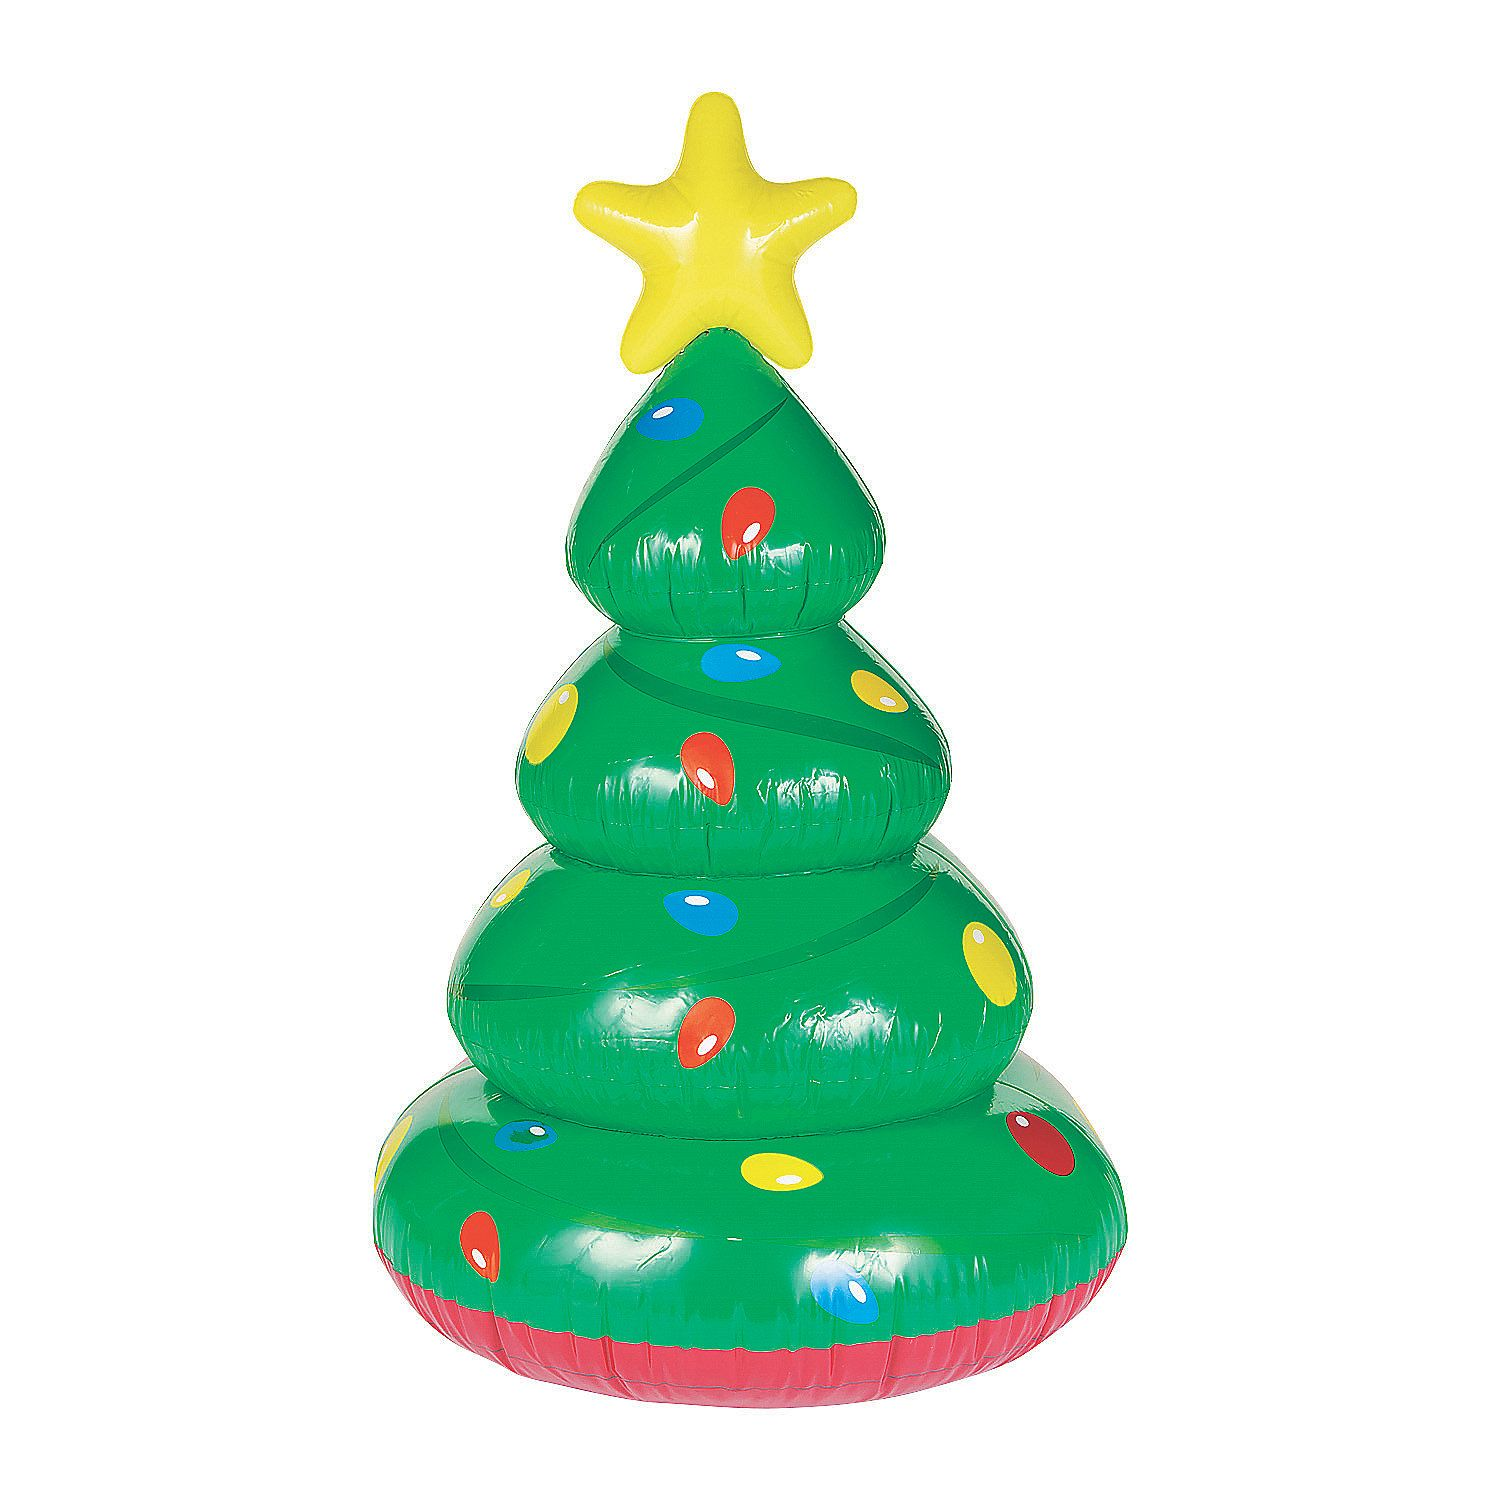 Large Inflatable Christmas Tree Orientaltrading Com In 2020 Inflatable Christmas Tree Large Christmas Tree Christmas In July Decorations